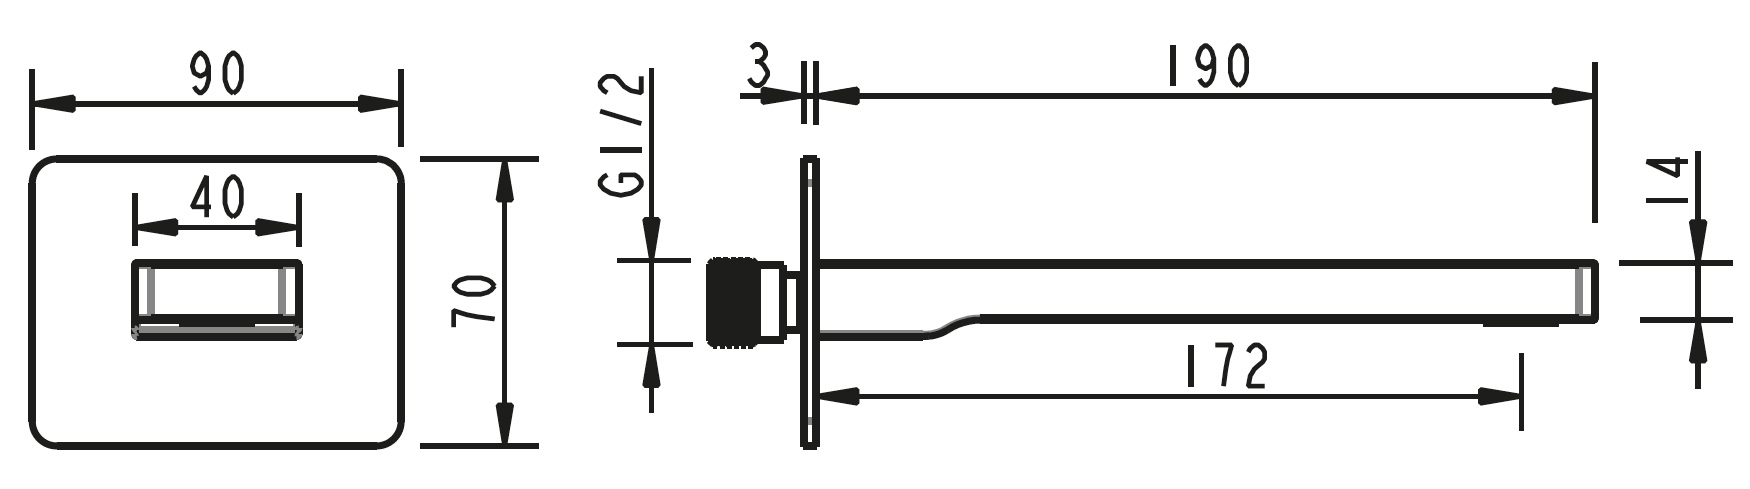 TECHNICAL DRAWING schéma 2